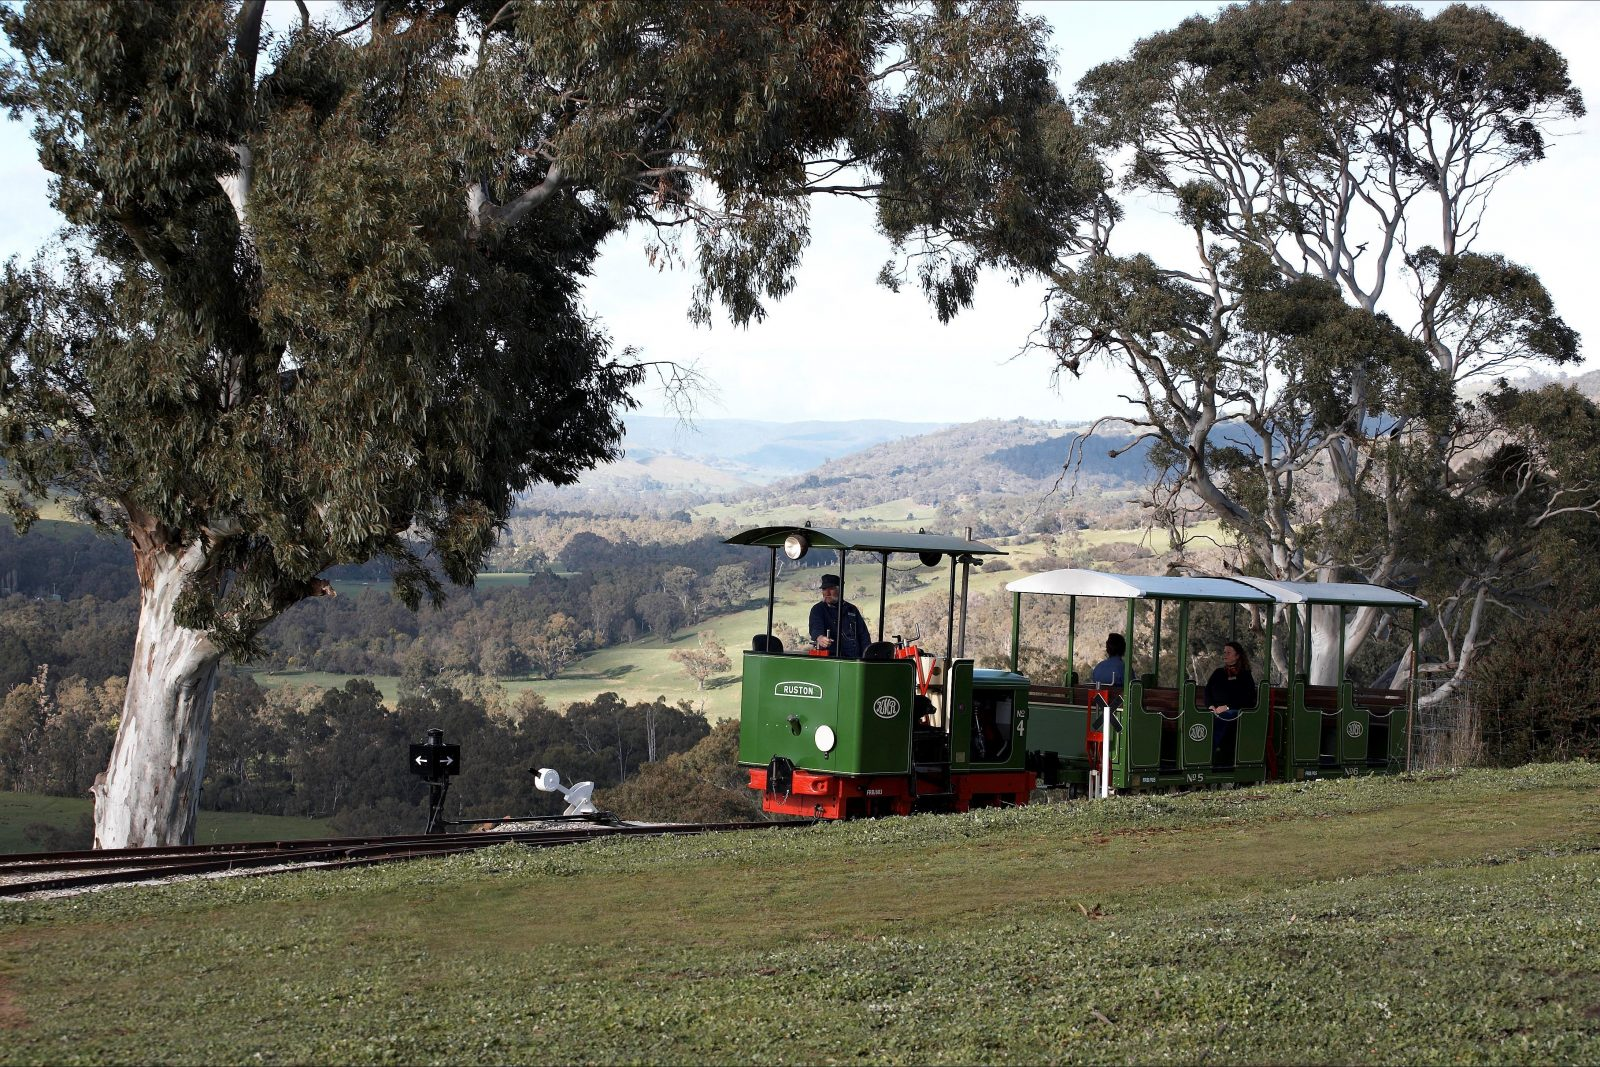 A photo of the Ruston Locomotive view a view toward Strath Creek South of 'Summit Station'